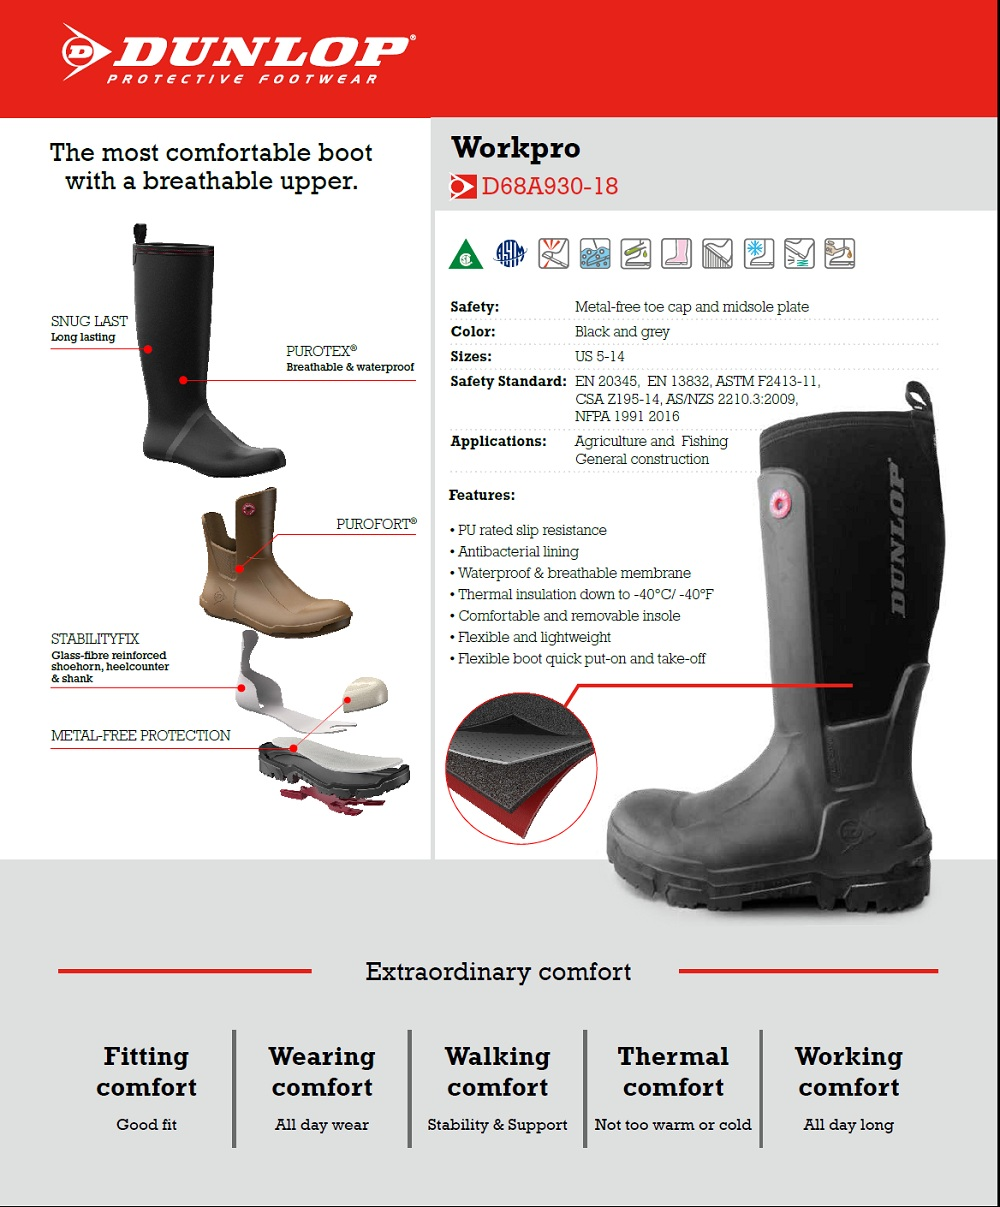 013ce72920d DUNLOP SNUGBOOT WORKPRO FULL SAFETY BOOT